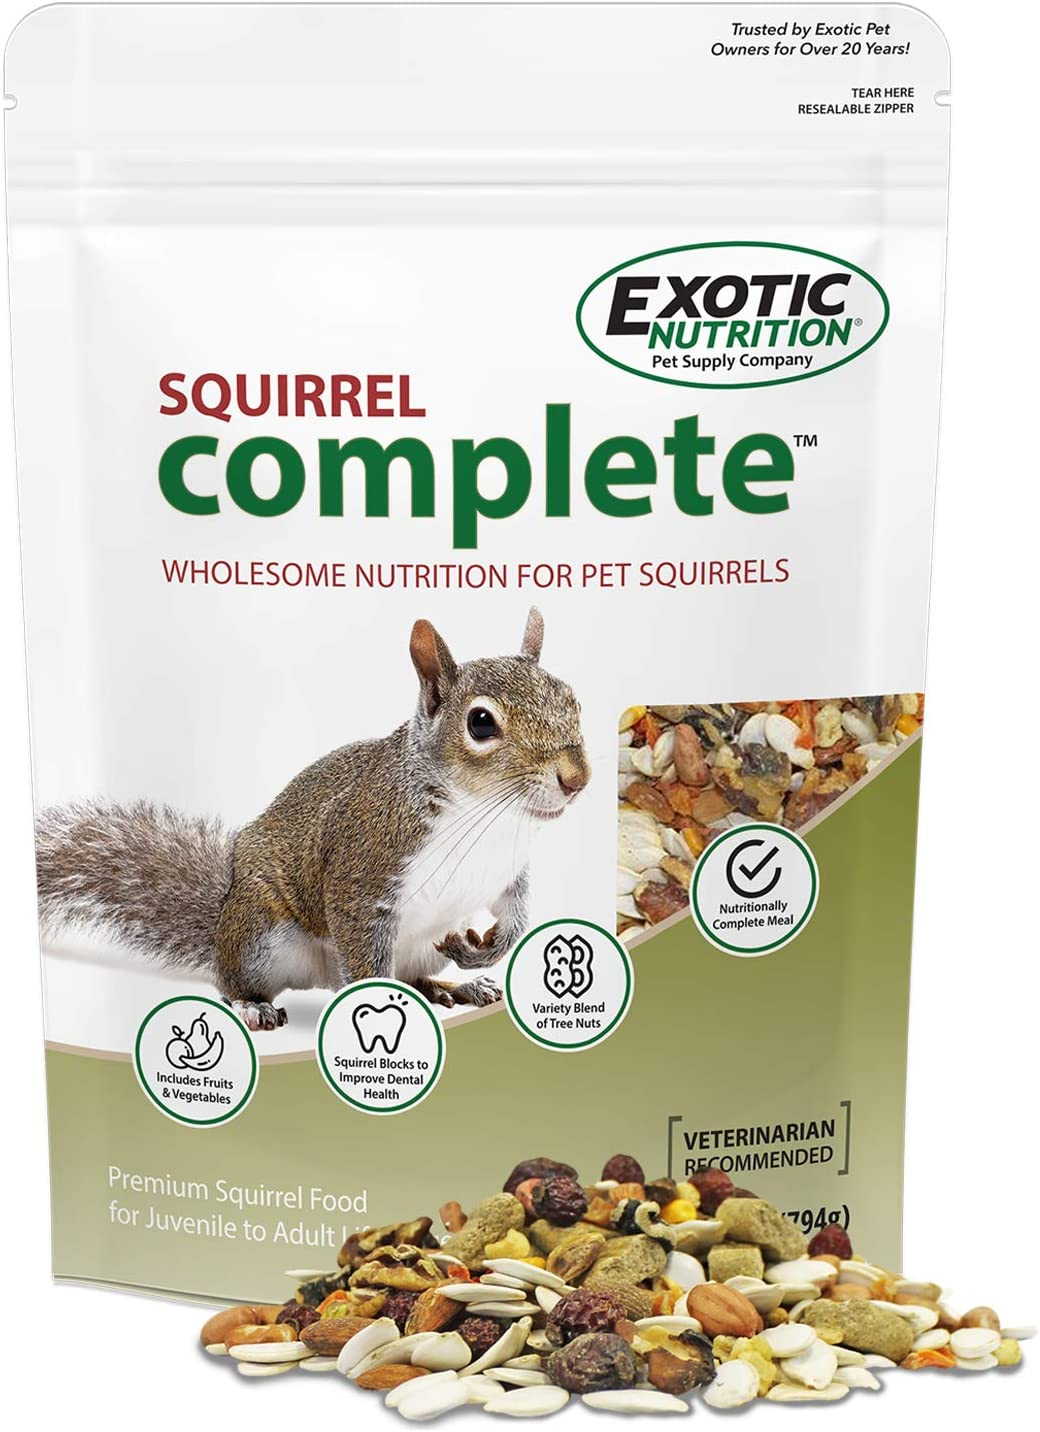 Squirrel Complete - Healthy Natural Food - Nutritionally Complete Diet for Pet & Captive Squirrels - Ground Squirrels, Grey Squirrels, Flying Squirrels, & Chipmunks